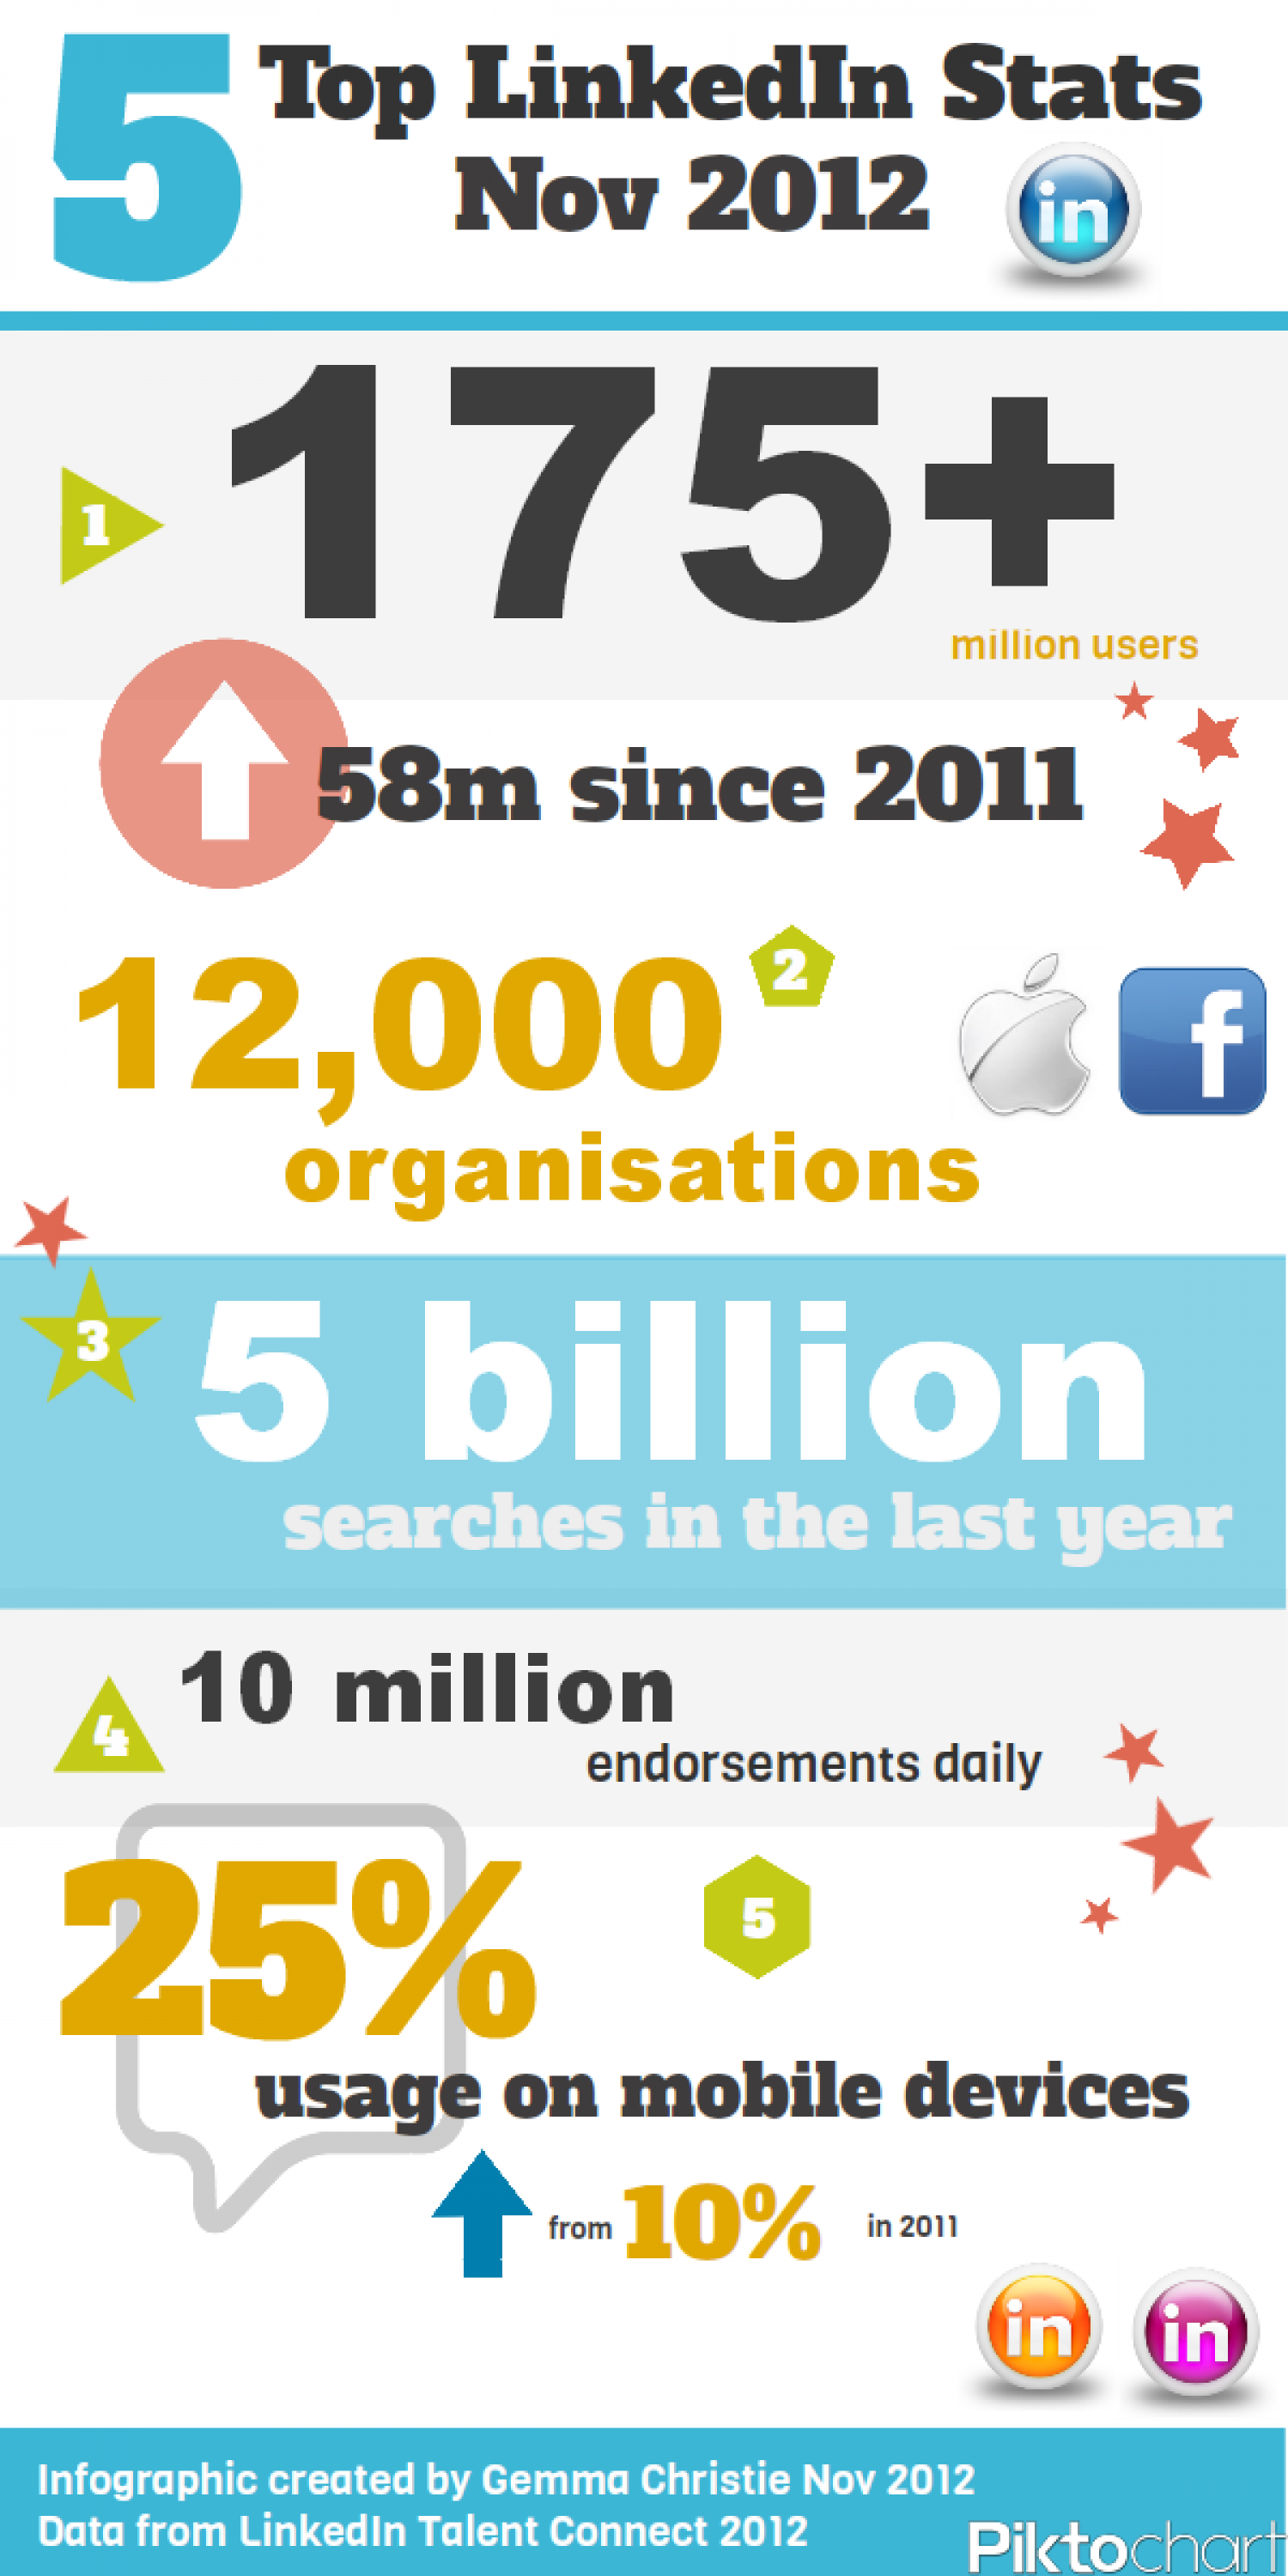 Top 5 LinkedIn Stats - Nov 2012 Infographic